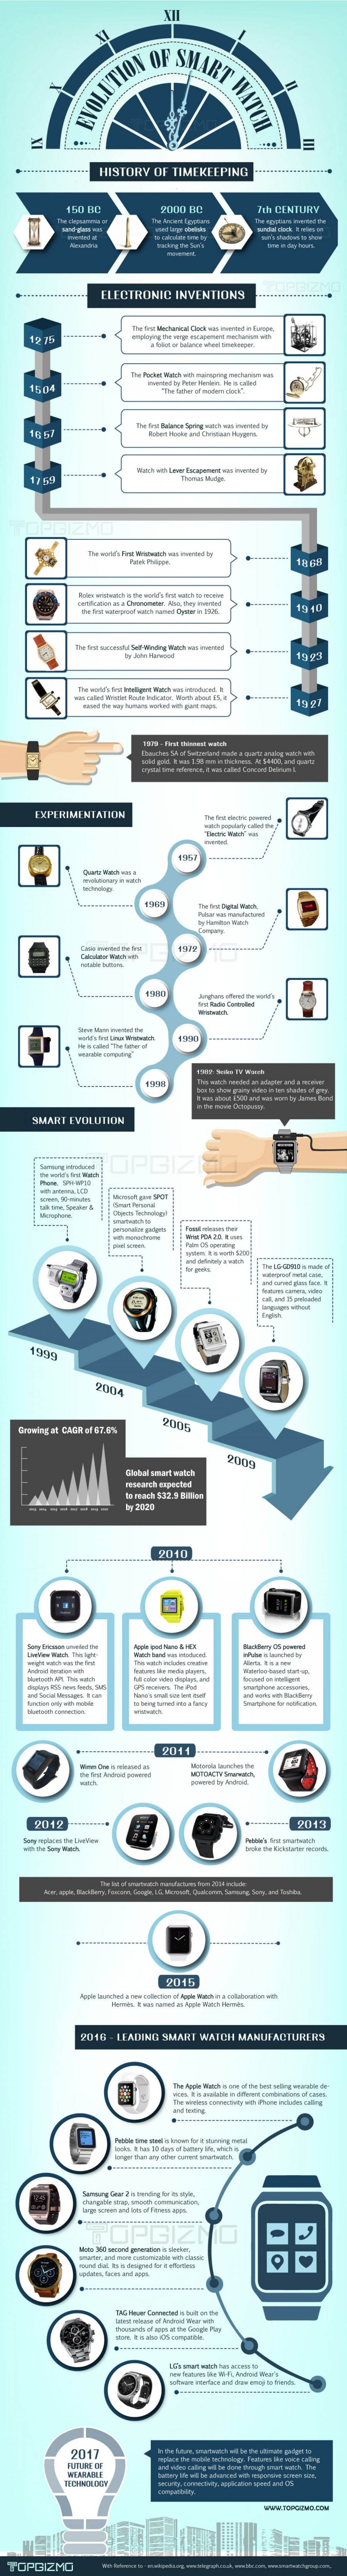 evolution-of-smartwatches-with-time_56e94c866d0ac_w1500